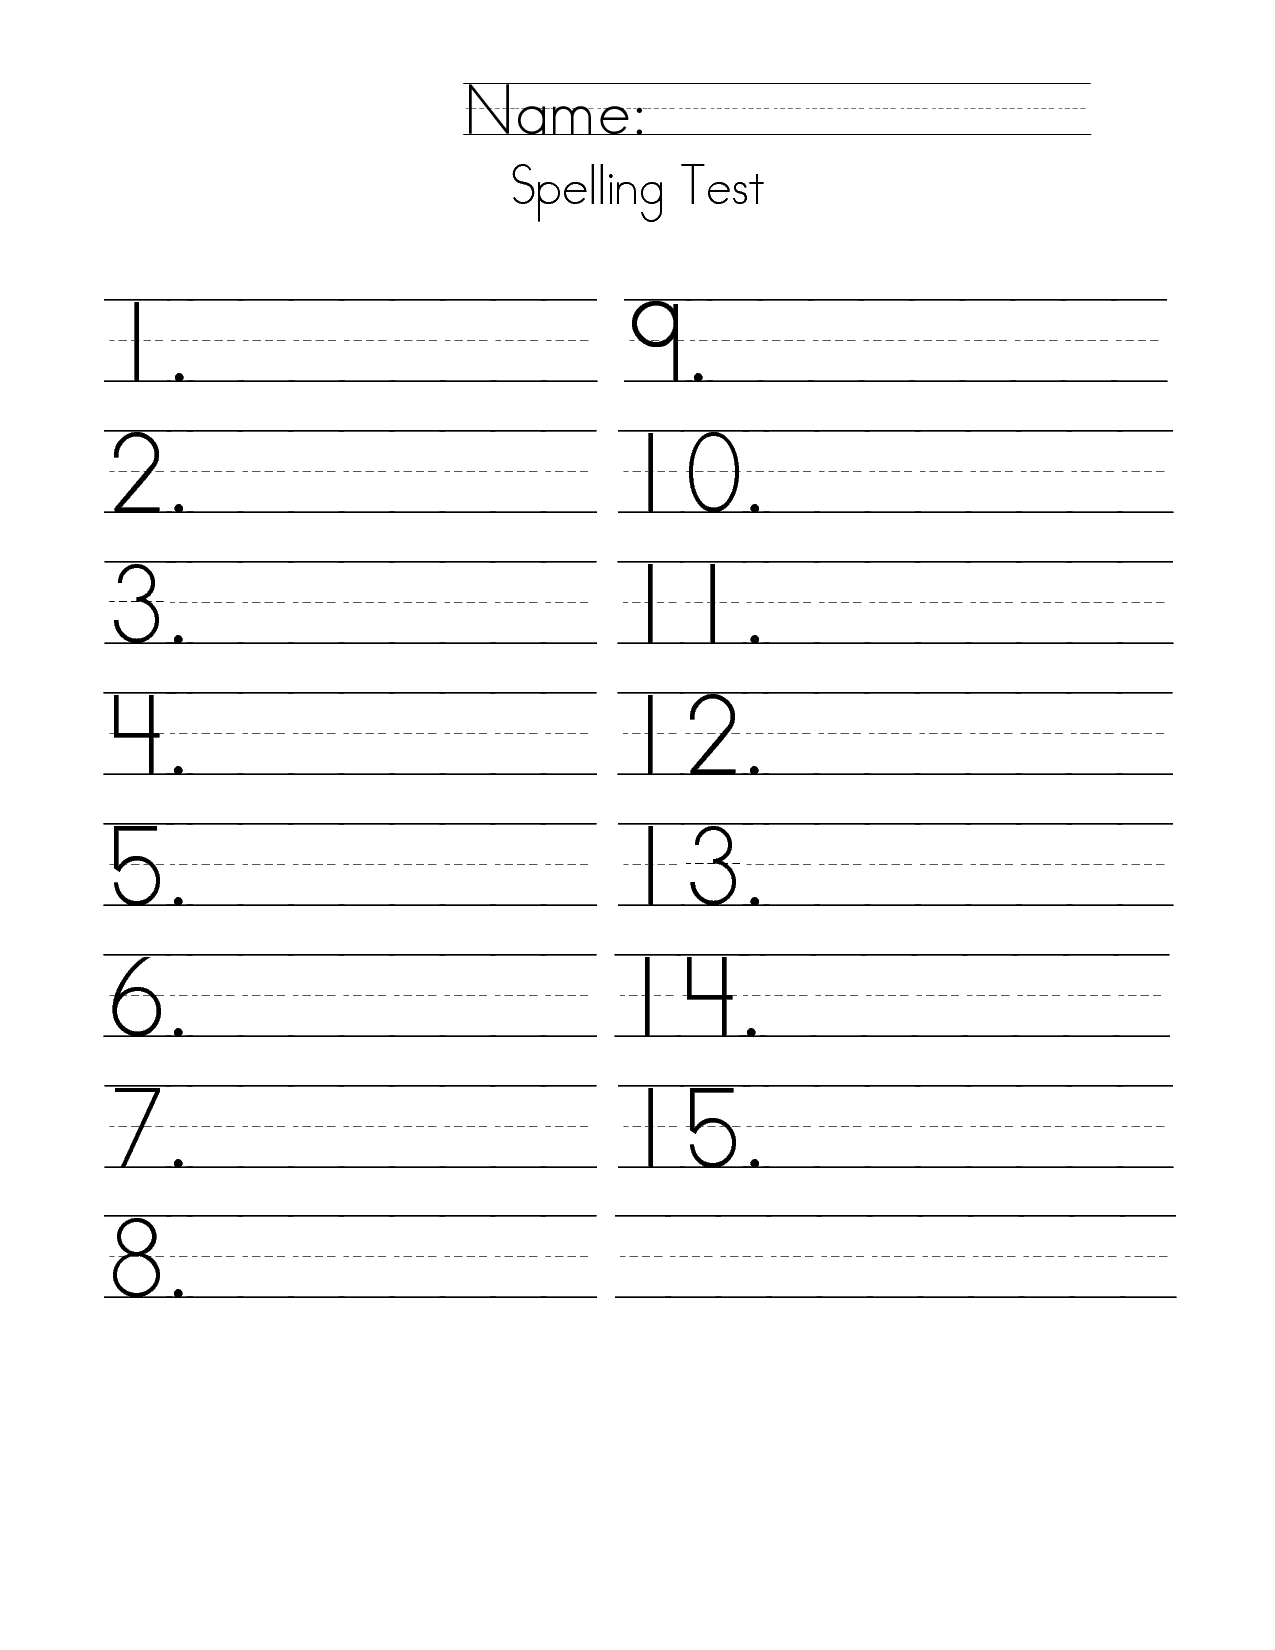 first grade spelling test paper | 15 Answer Spelling Test Paper